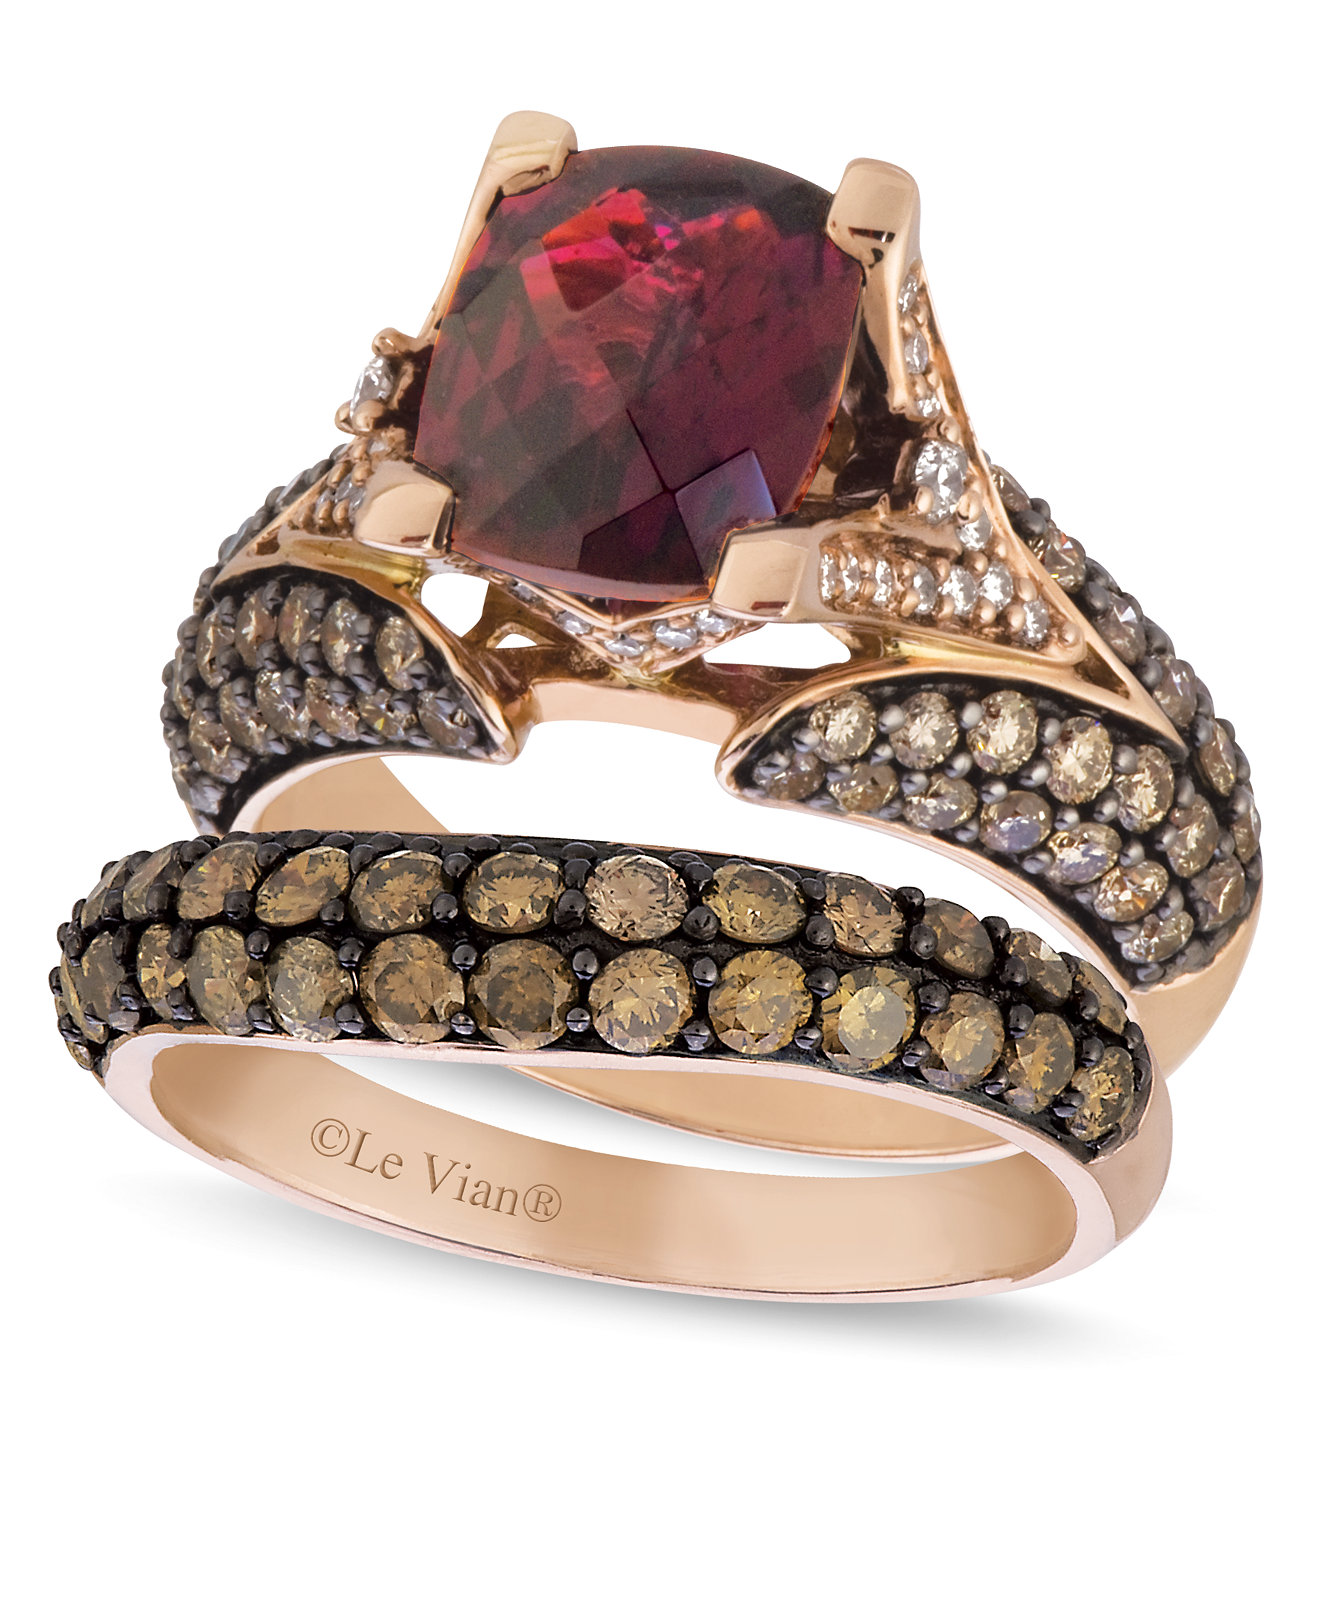 le vian stackable rings in 14k rose gold ID le vian wedding bands Fine Jewelry Since larger view